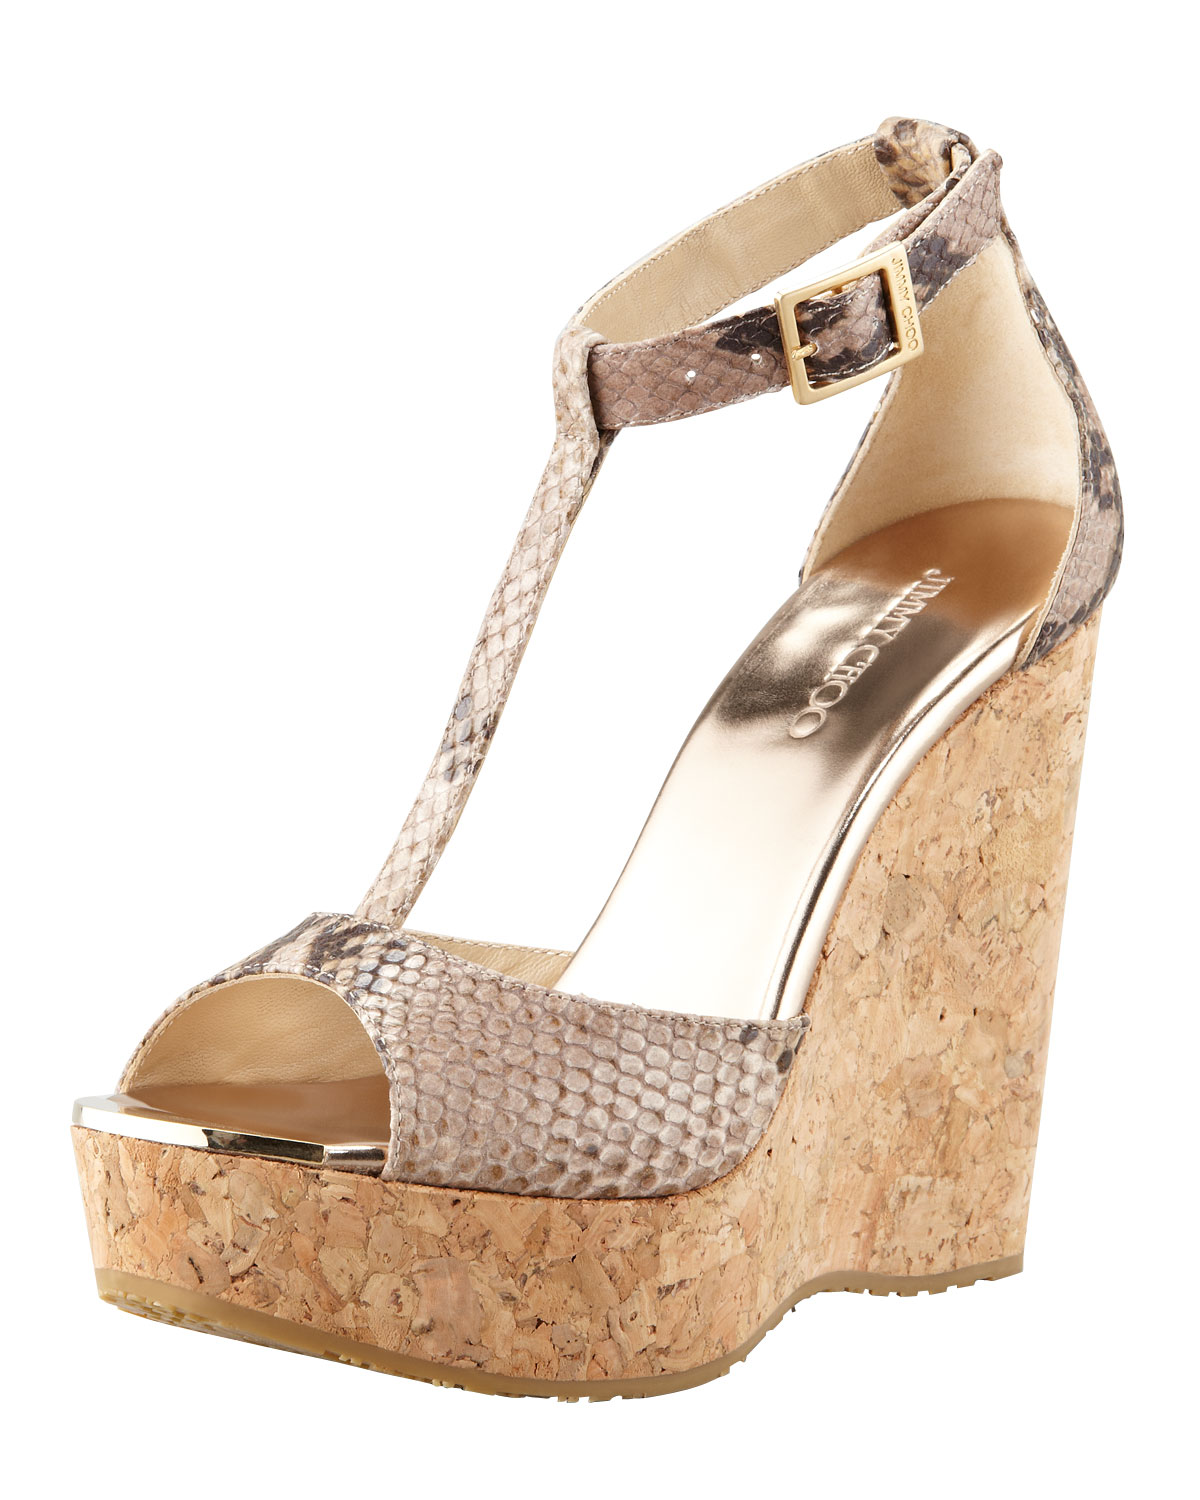 Jimmy Choo Pela Snakeprint Wedge Sandal In Metallic Lyst